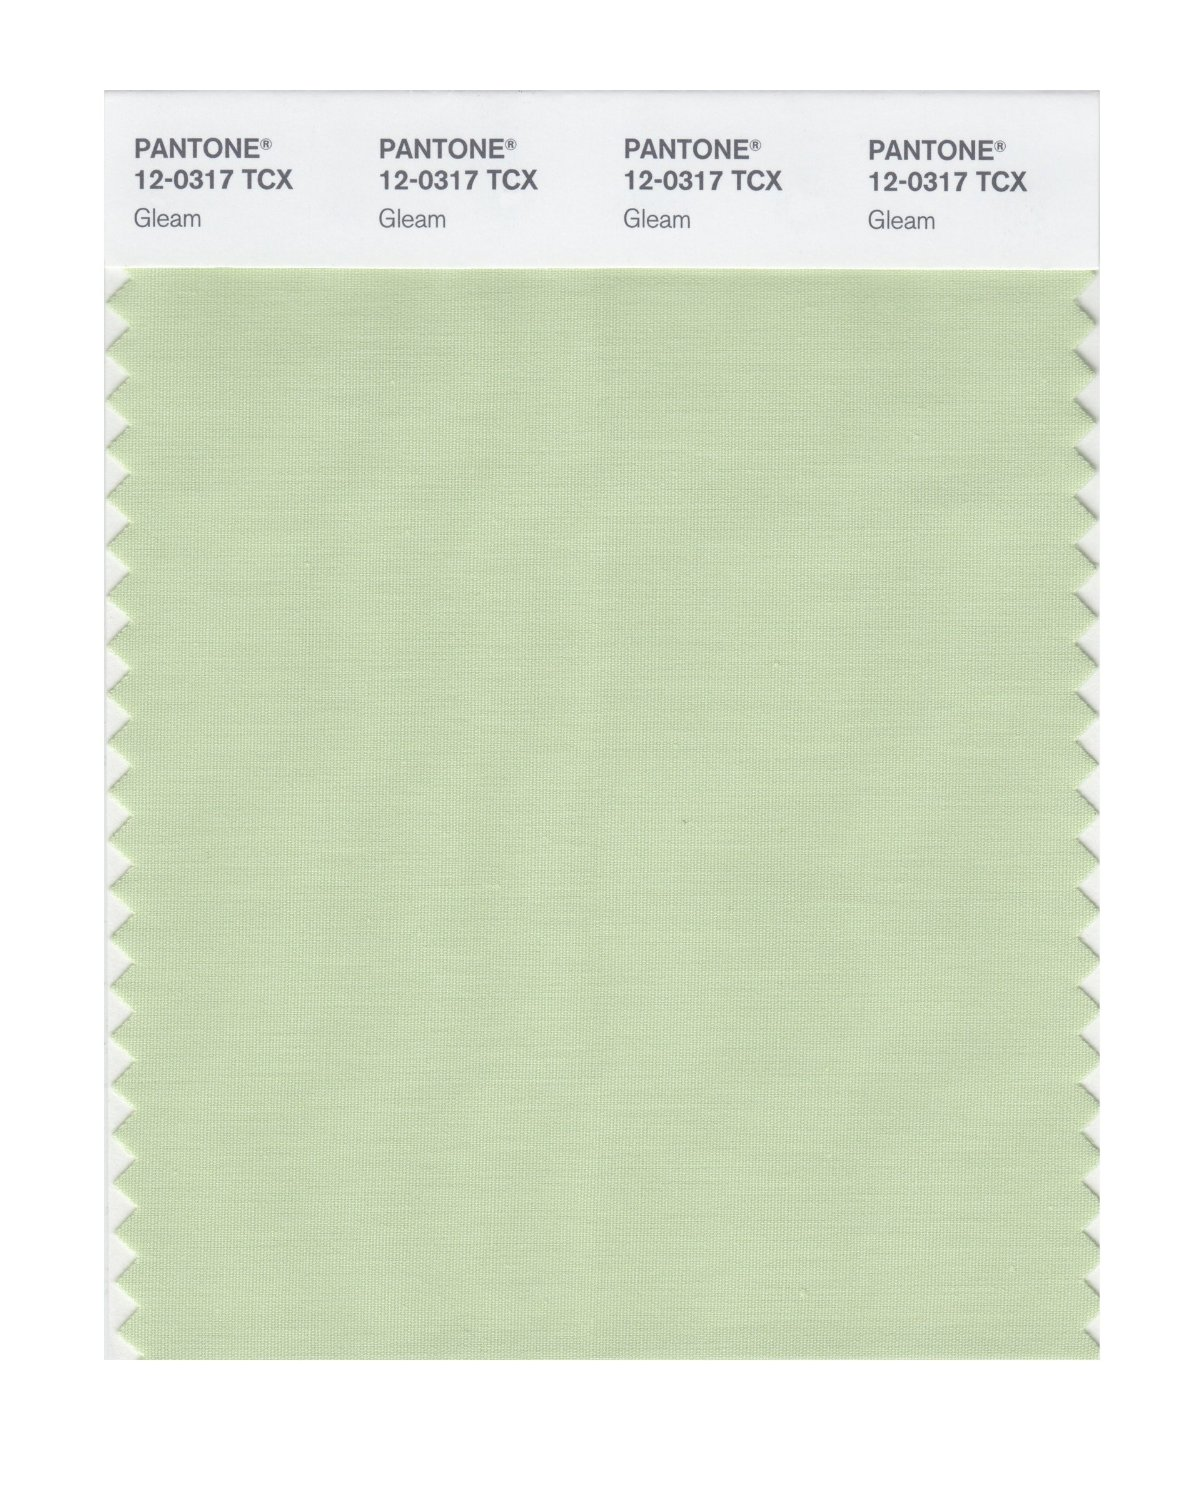 Pantone Smart Swatch 12-0317 Gleam